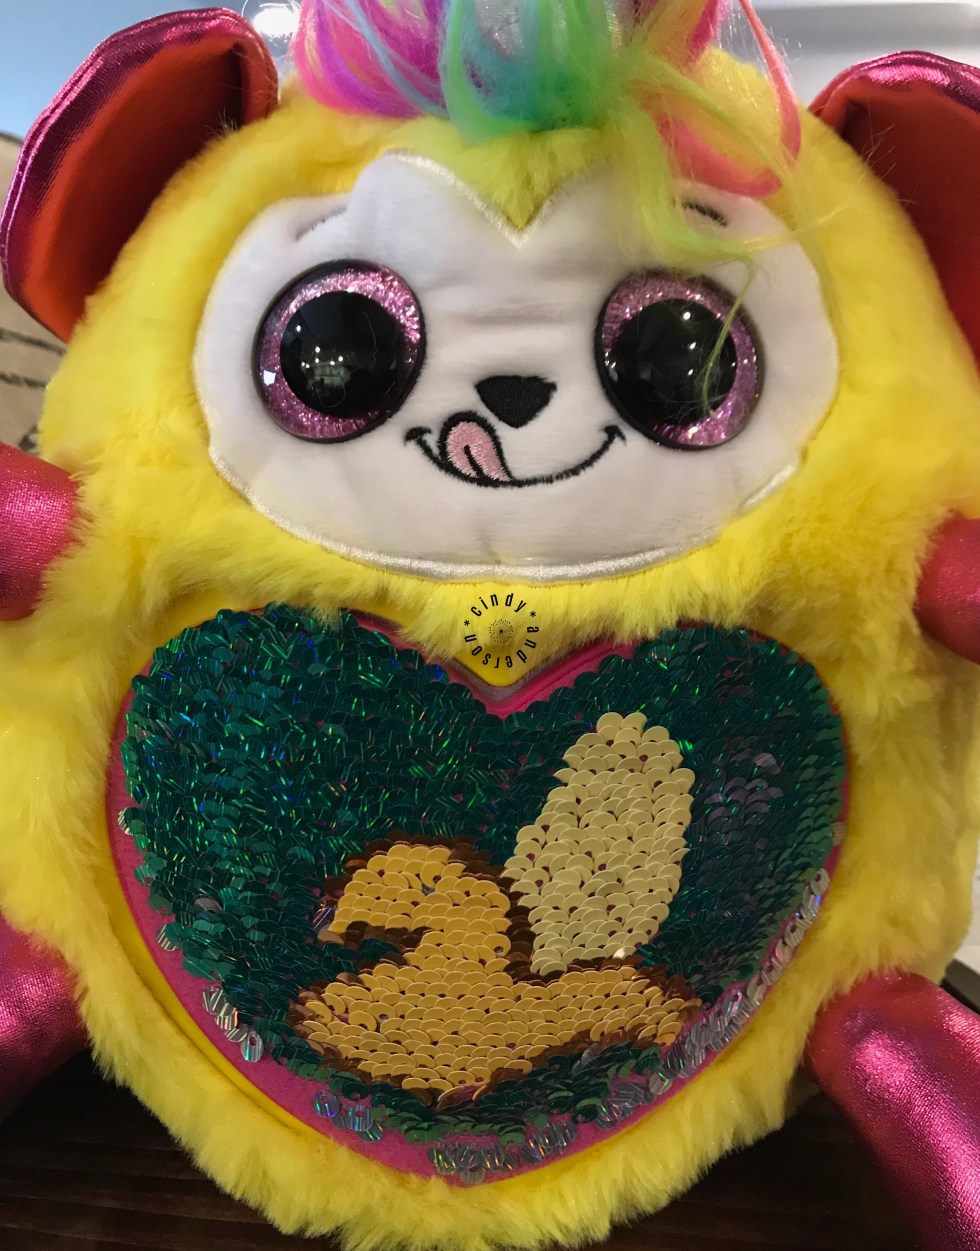 A soft and cuddly yellow creature equipped with a tuft of rainbow hair, a unicorn horn, shiny pink ears and limbs, and a sequined heart in the middle of it's tummy displaying a banana.